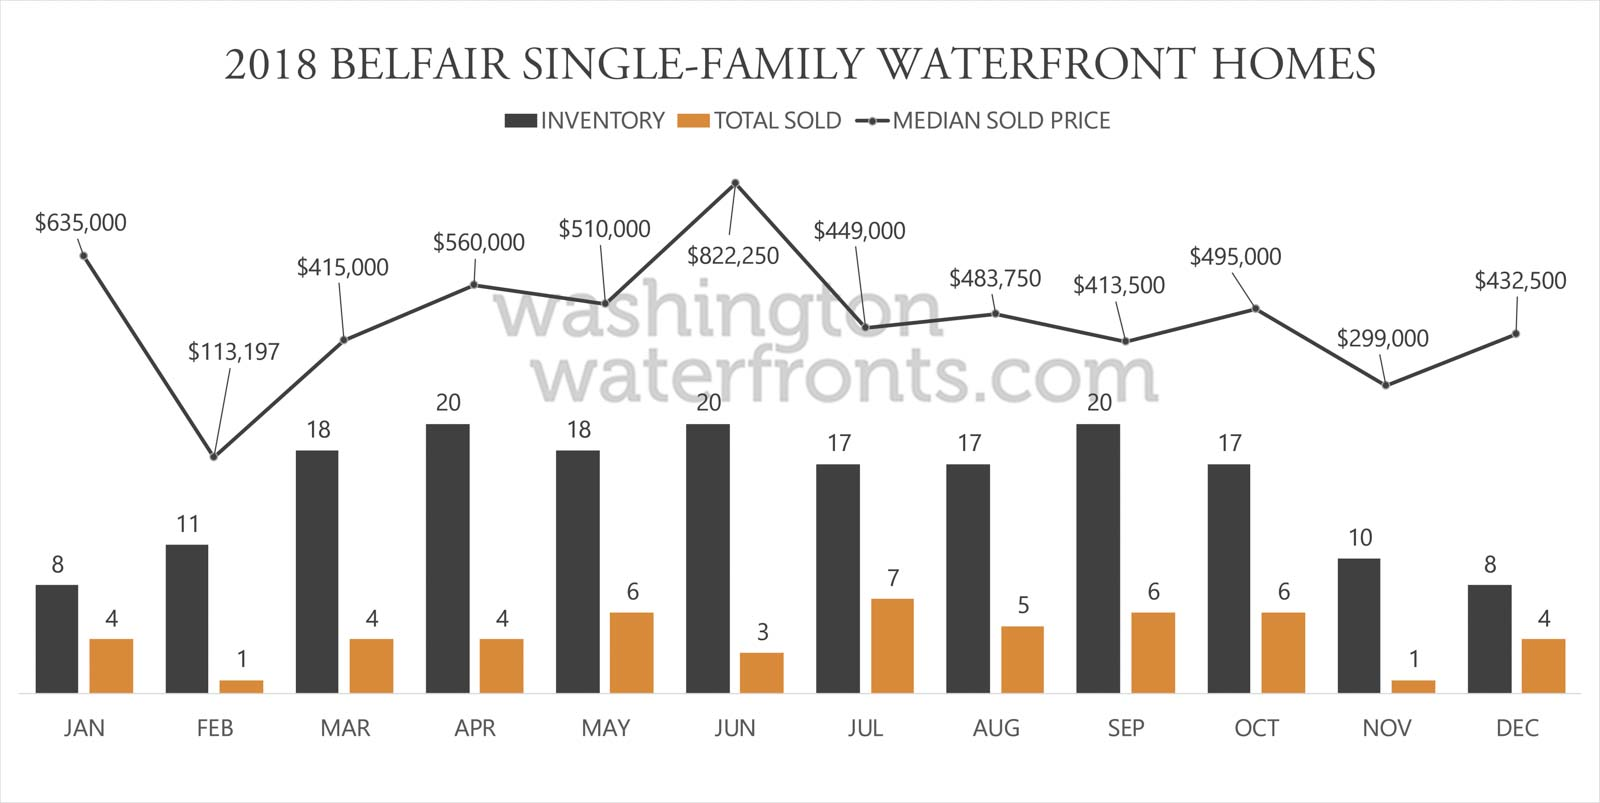 Belfair Waterfront Inventory